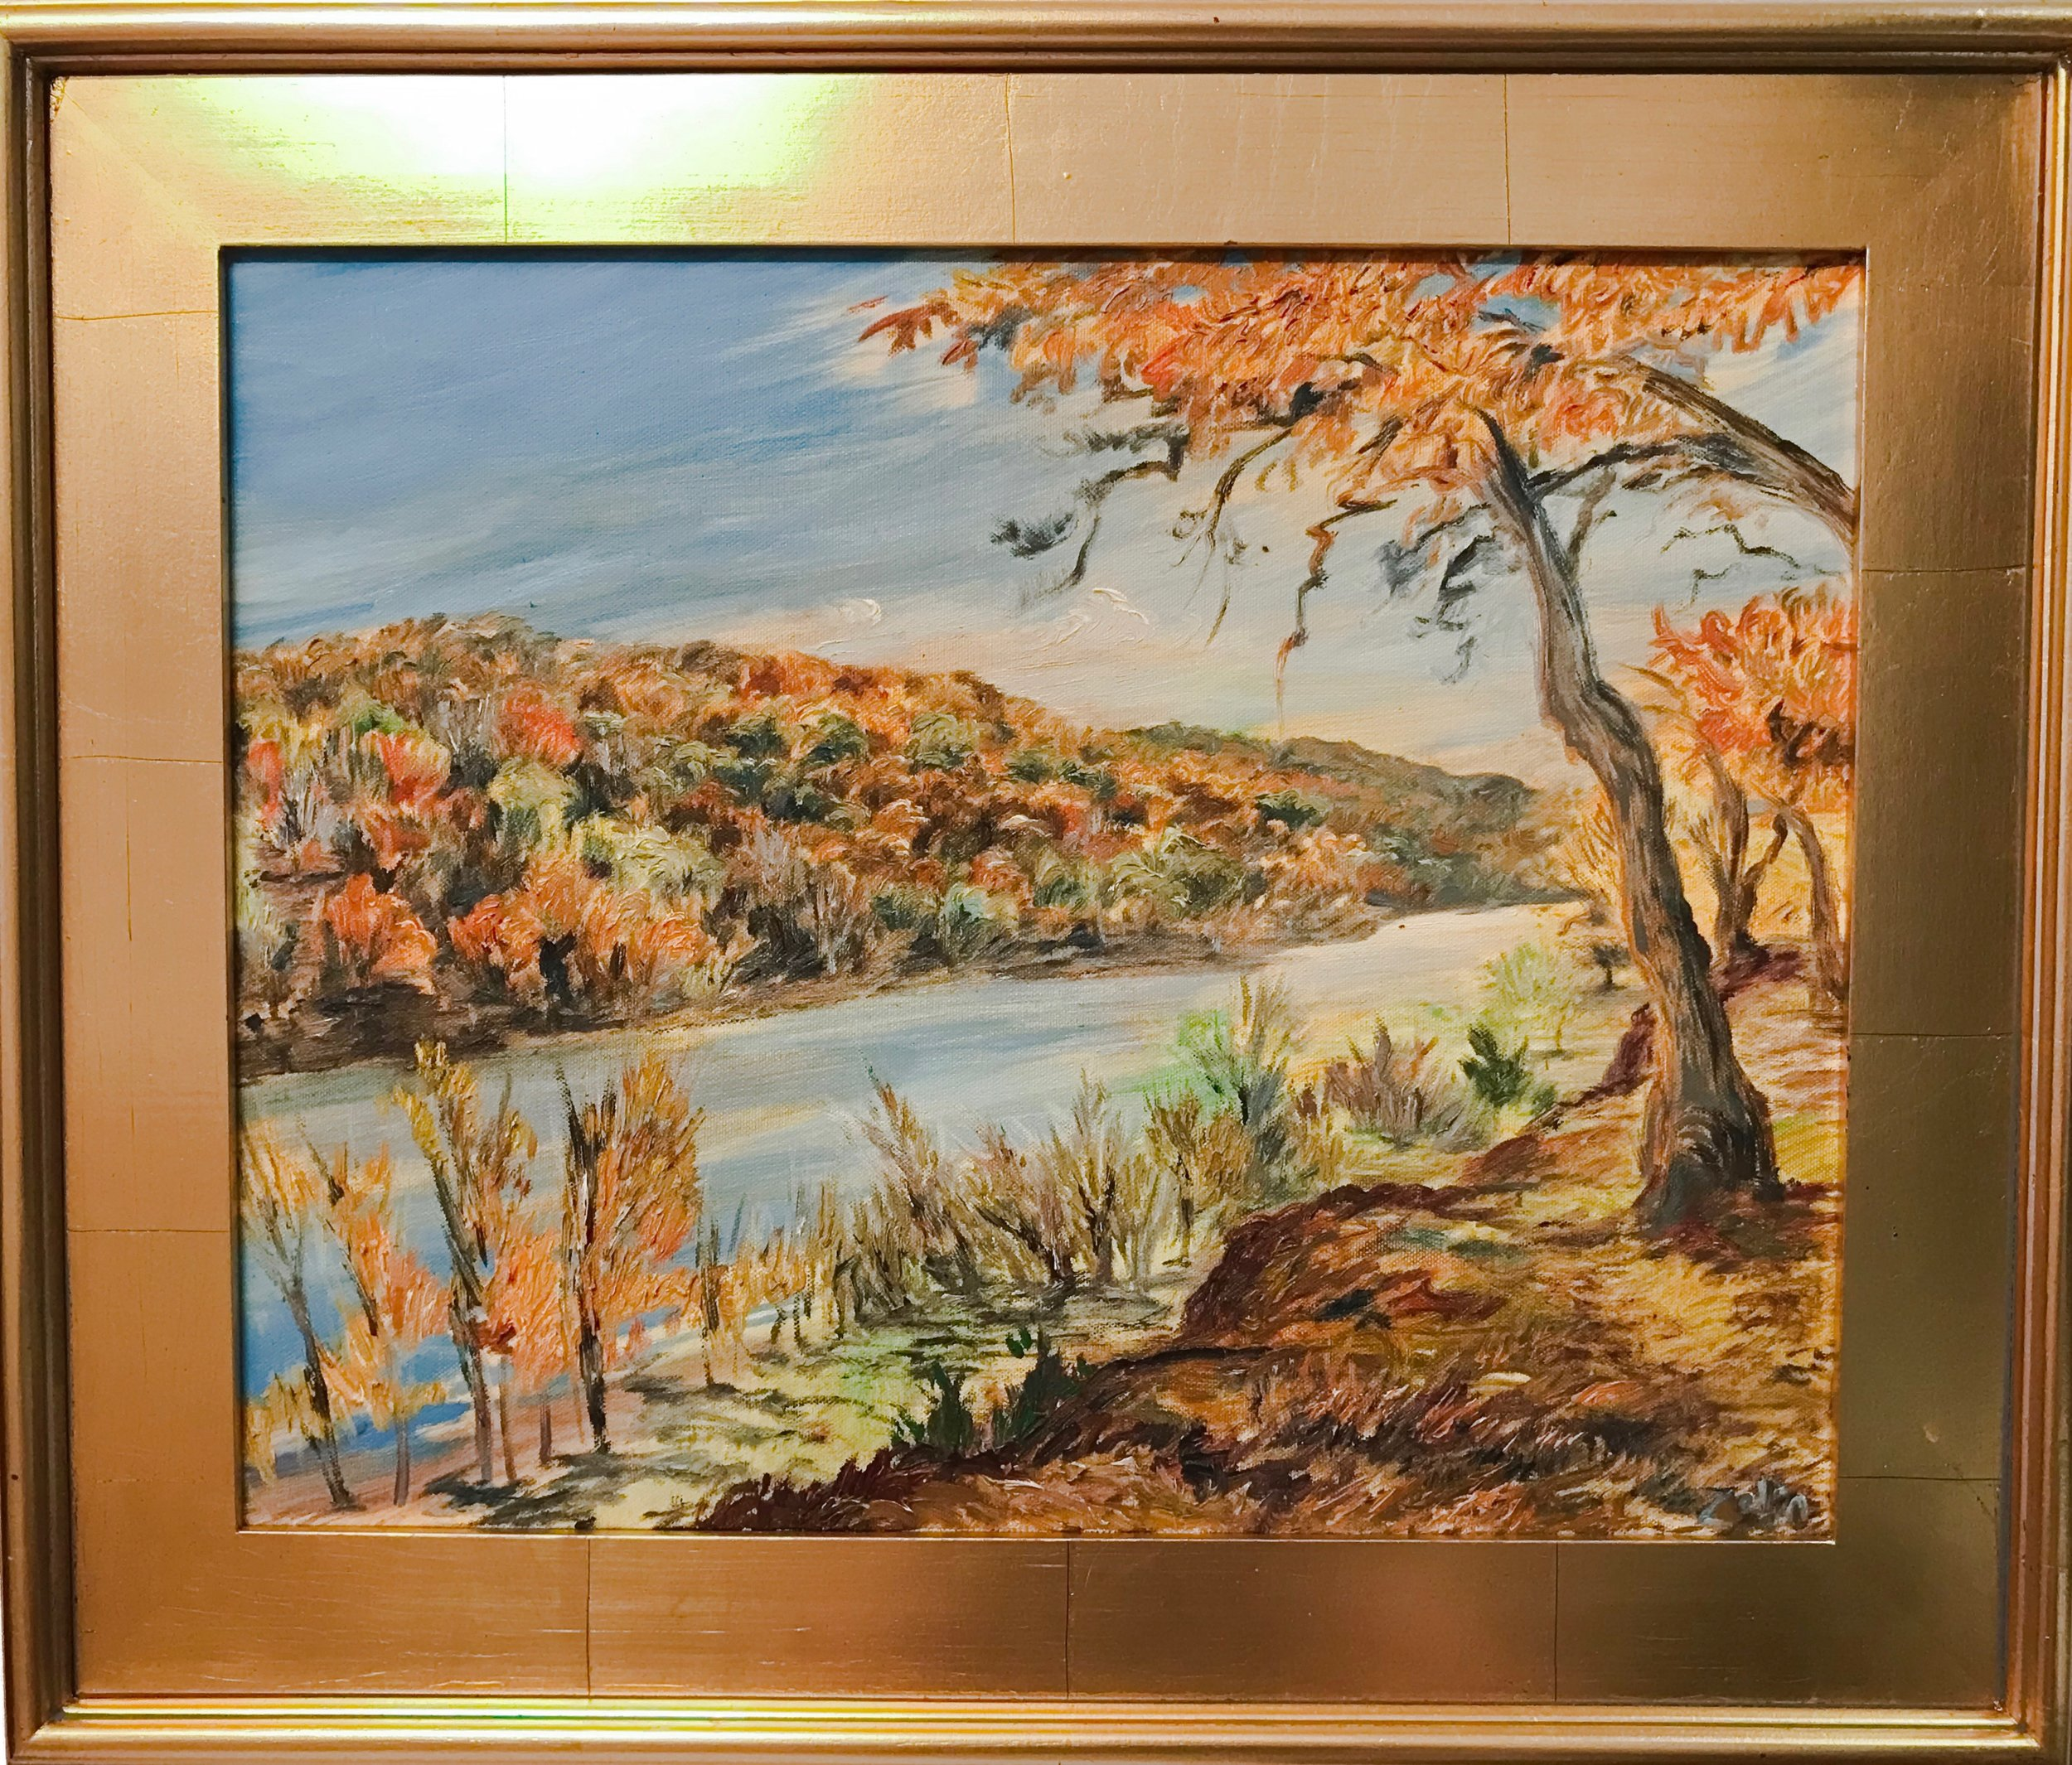 Steve Zolin   Connecticut River in Autumn 2   2017  Oil on canvas  Signed by the artist, lower right  16 x 20 inches  Framed: 22 x 26 inches